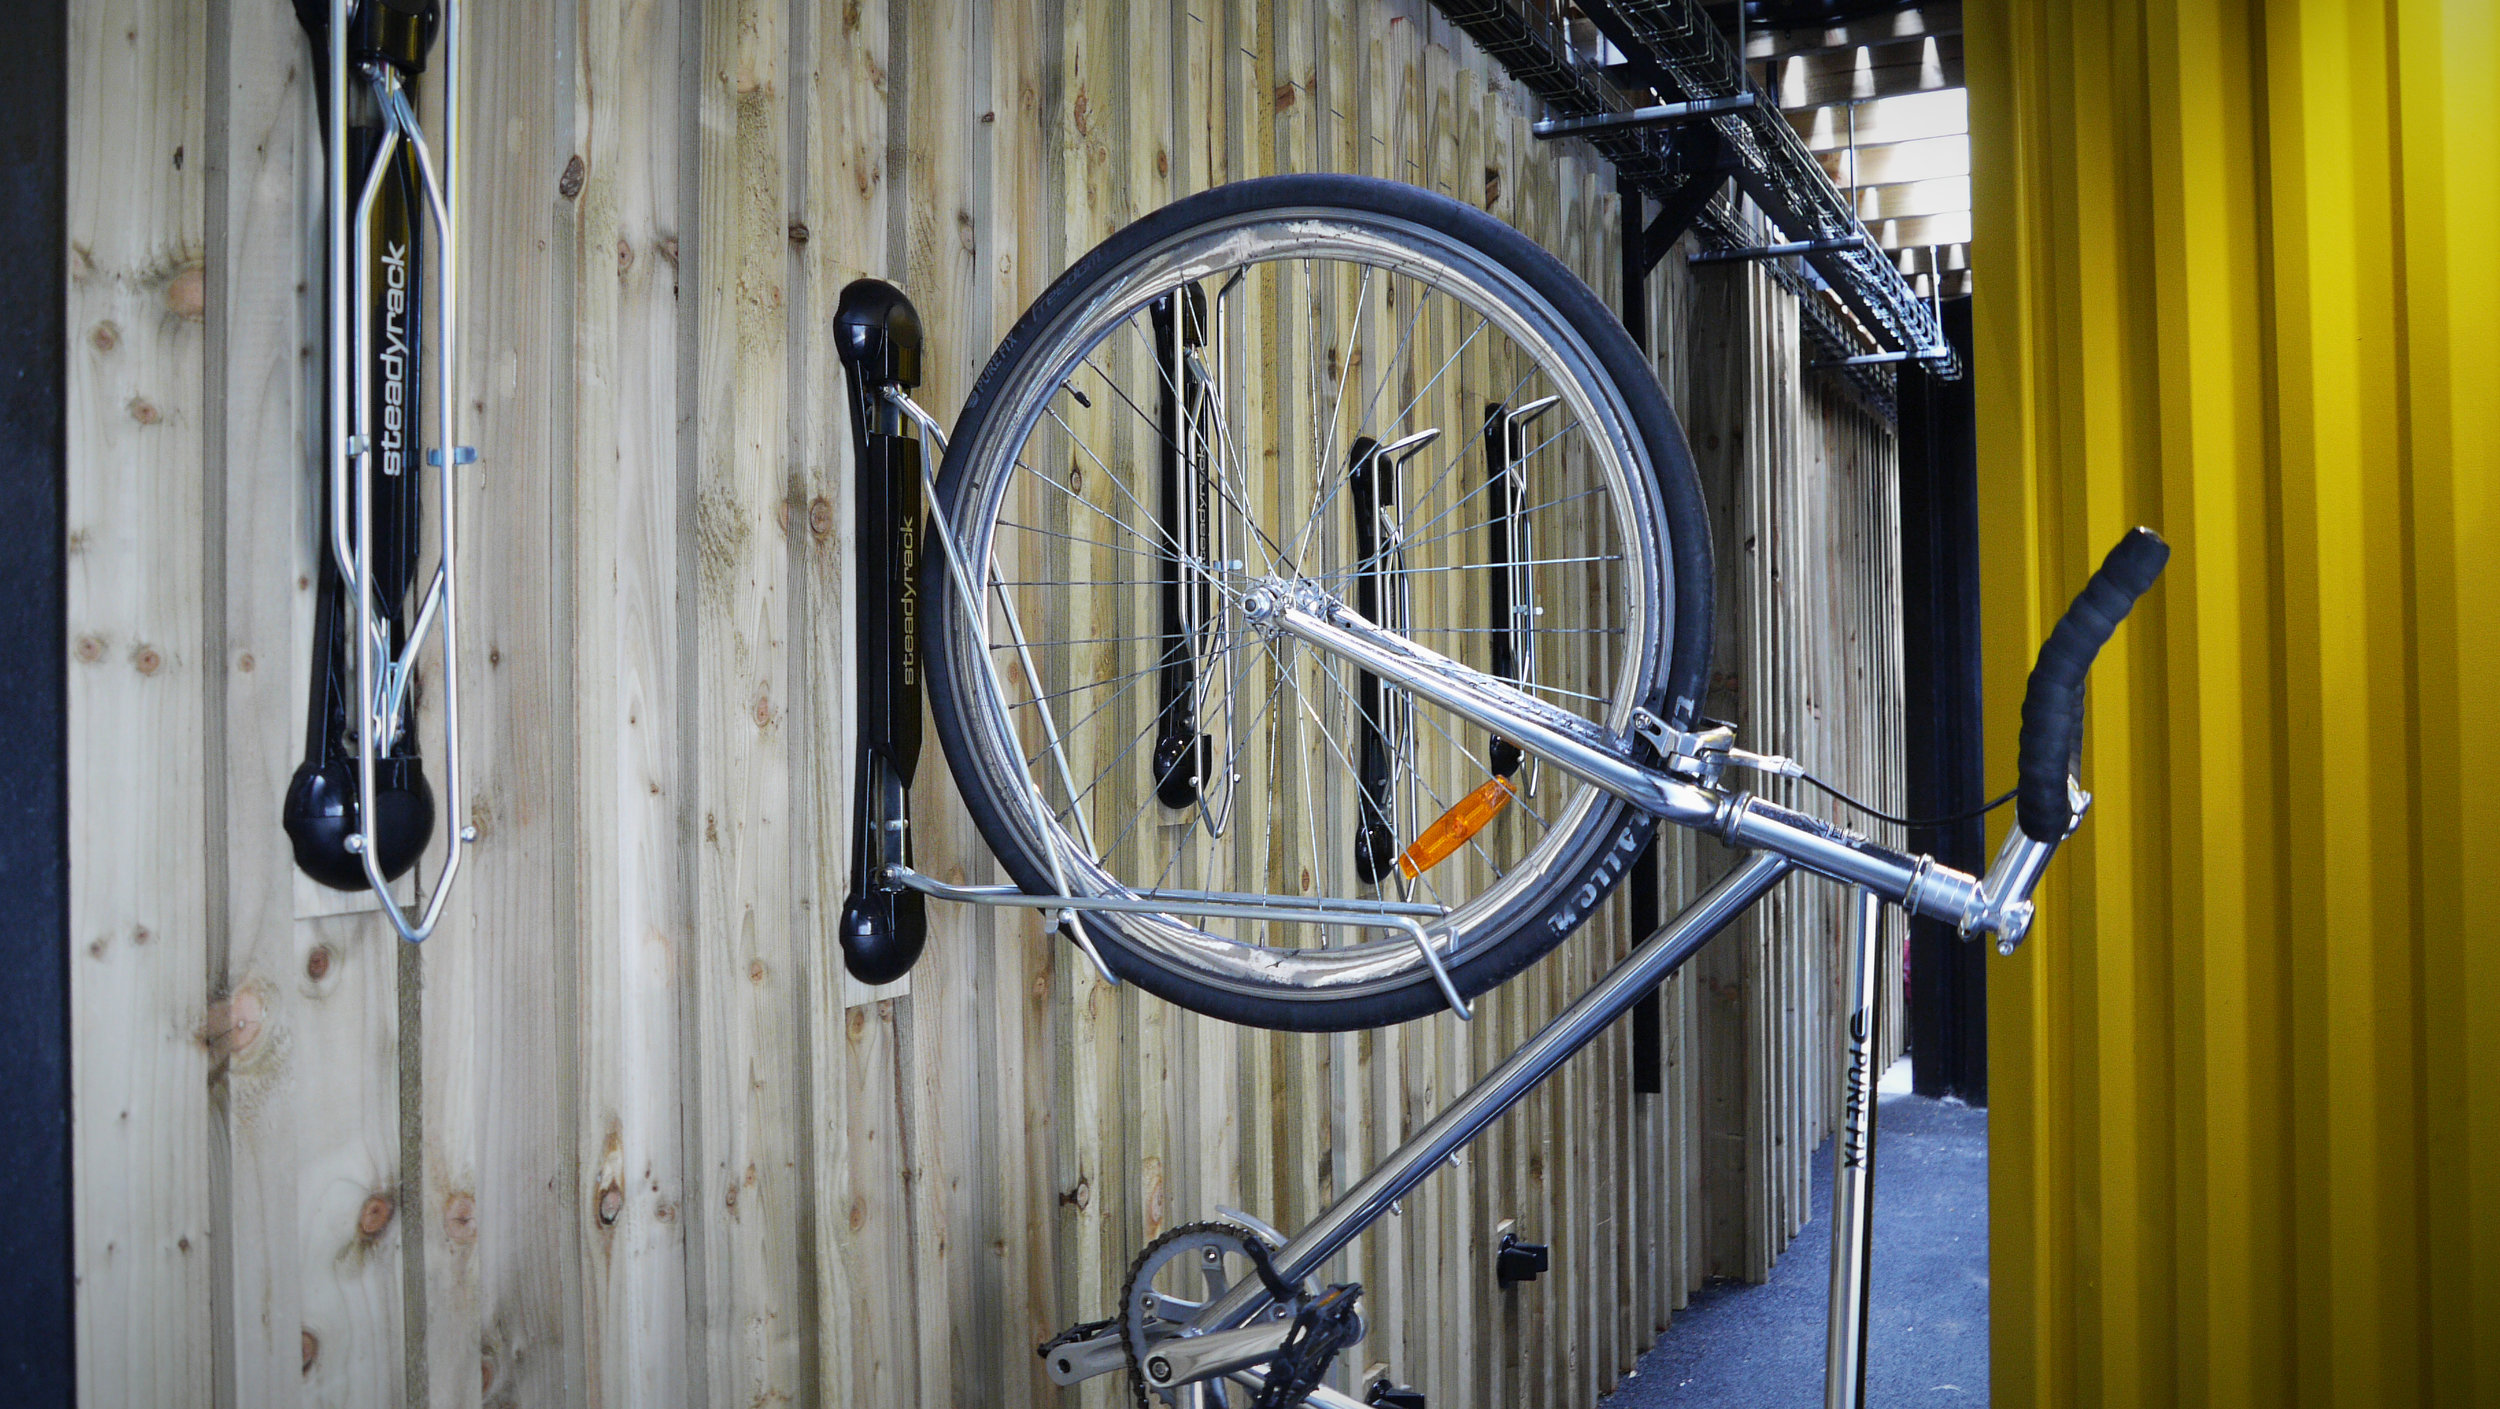 Recreation / Outdoor space - Outdoor terrace on first floorDedicated and designed smoking areaCycle racksEquipment lockersAccess to shower facilitiesLift access to first floor office